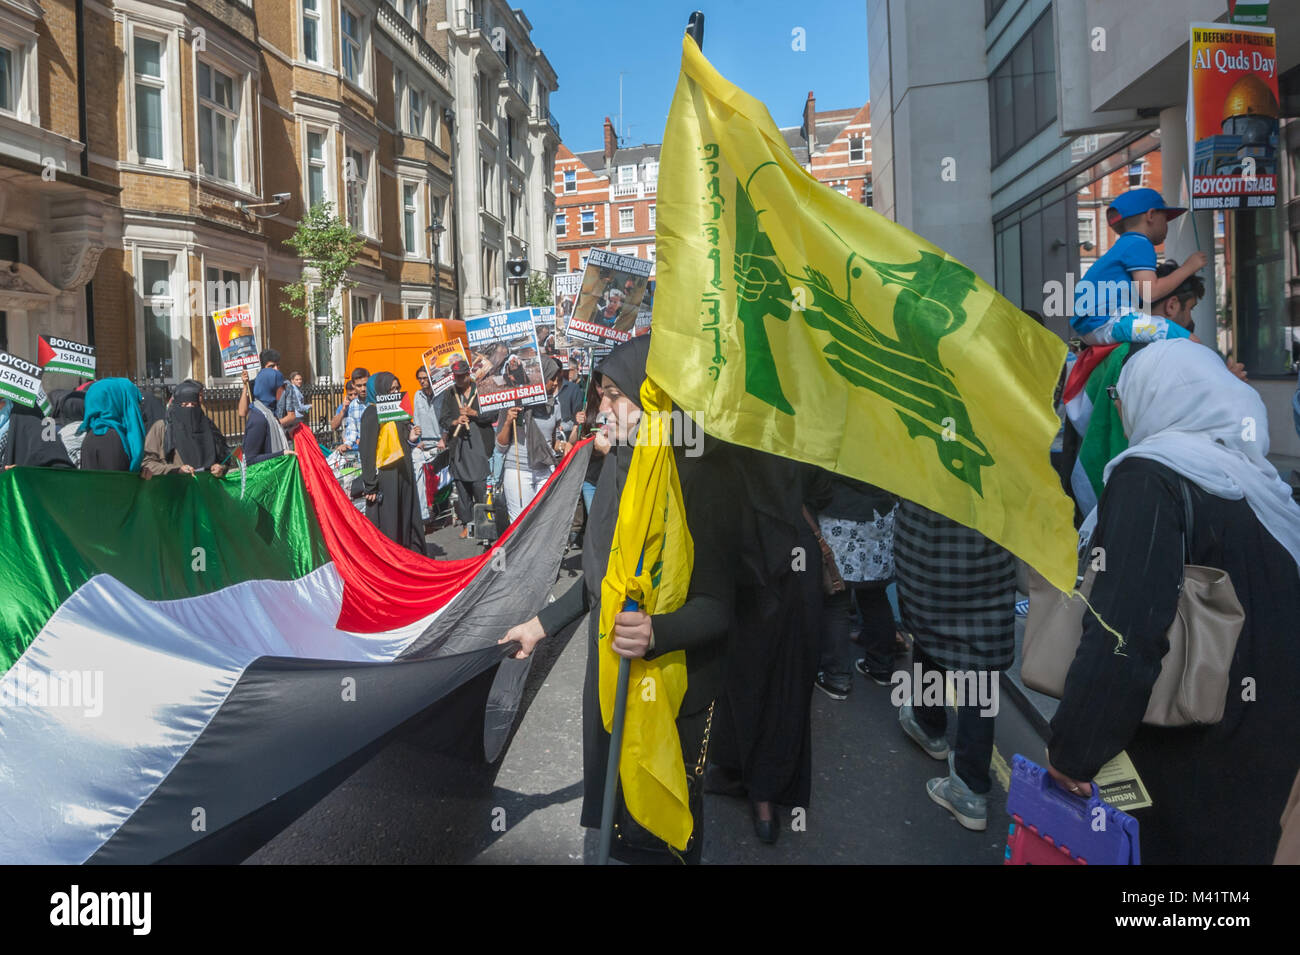 A few people on the march carried green and yellow Hezbollah flags at the Al Quds Day march in London. - Stock Image